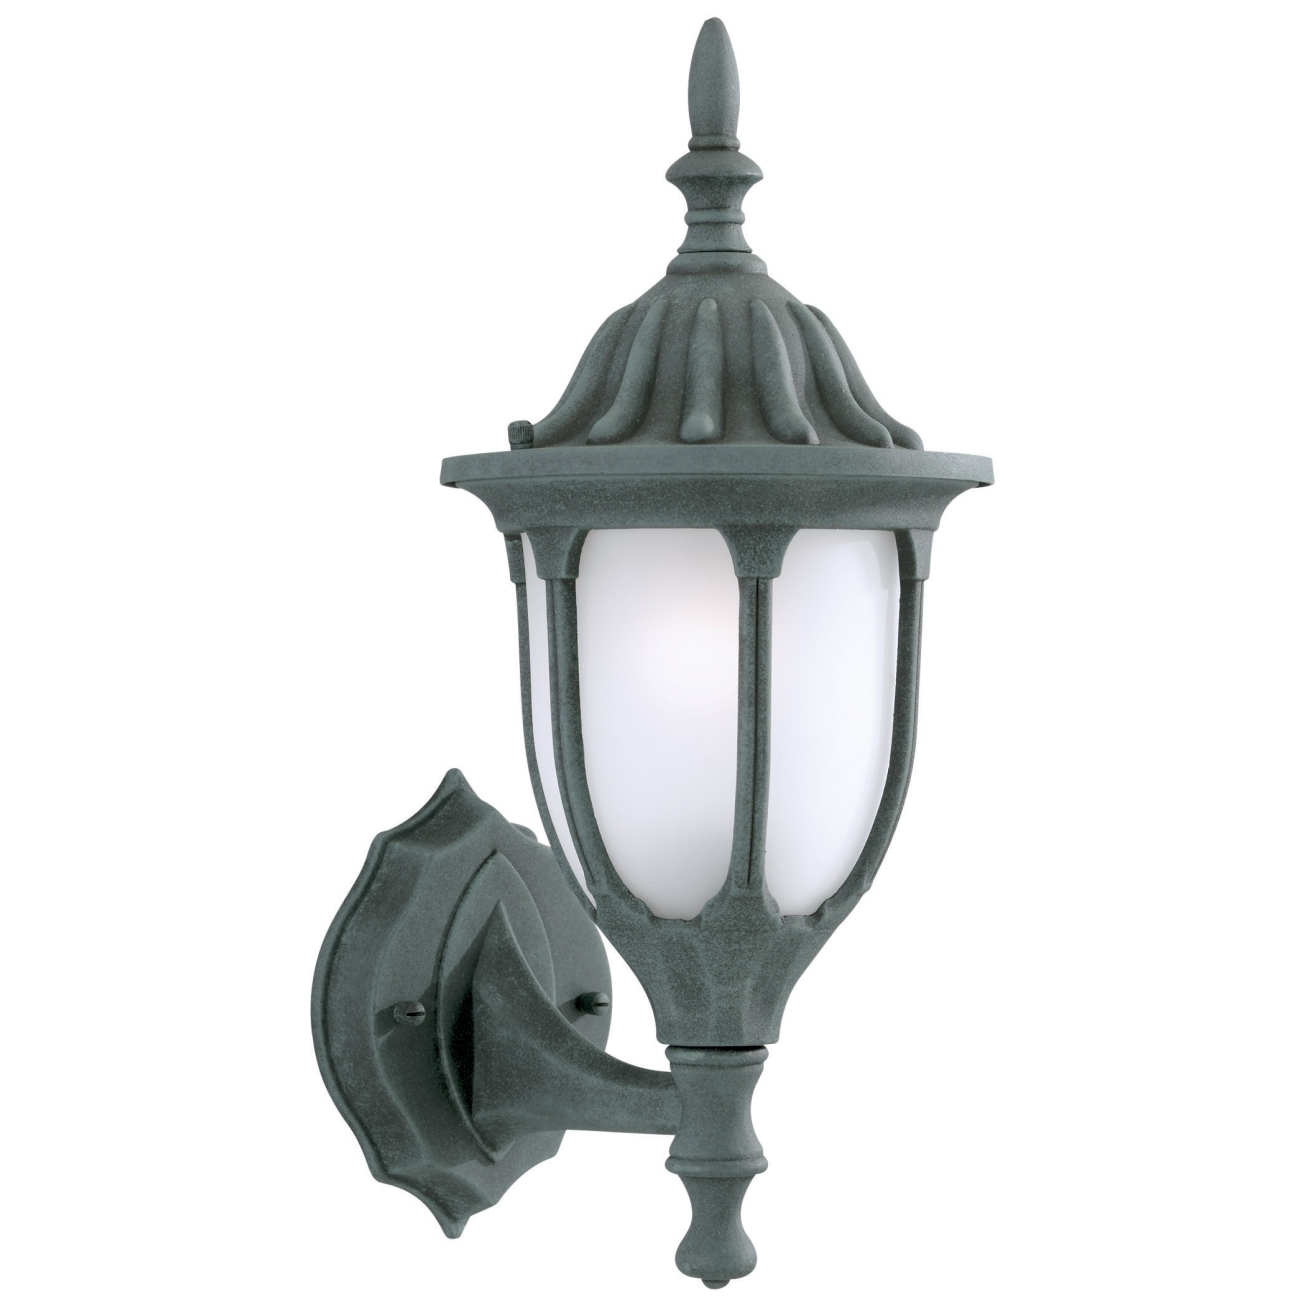 Most Recently Released Exterior Light Fixtures & Outdoor Wall Lighting At Ace Hardware Within Plastic Outdoor Wall Lighting (View 6 of 20)